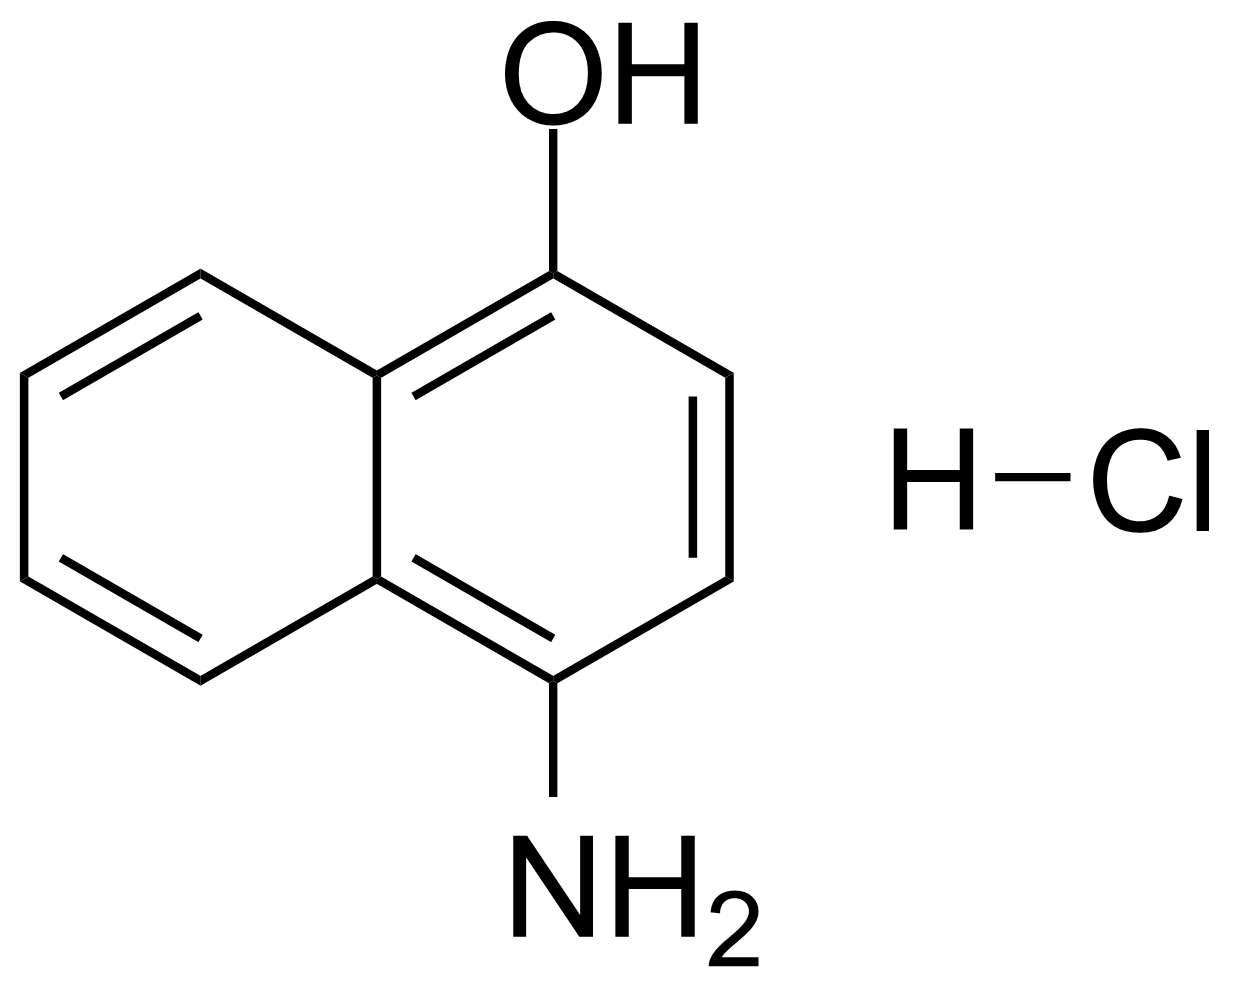 Structure of 4-Amino-1-naphthol hydrochloride